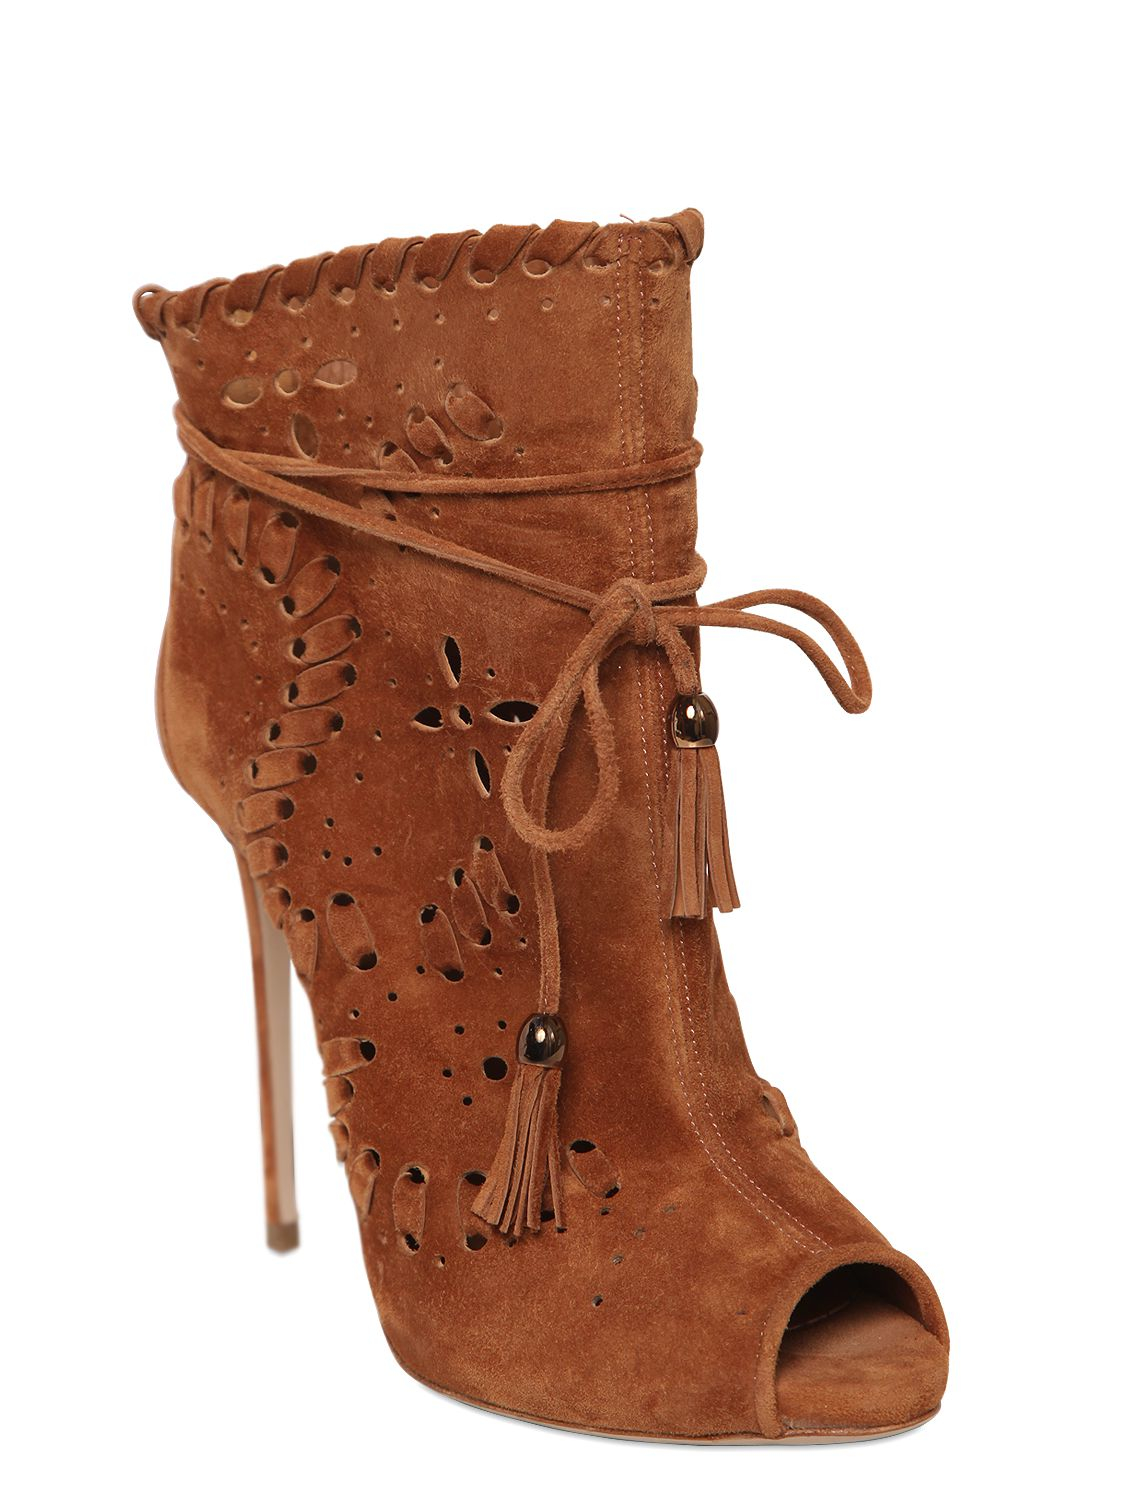 Le Silla Boots Le Silla 110mm Perforated Open Toe Suede Boots In Brown Lyst